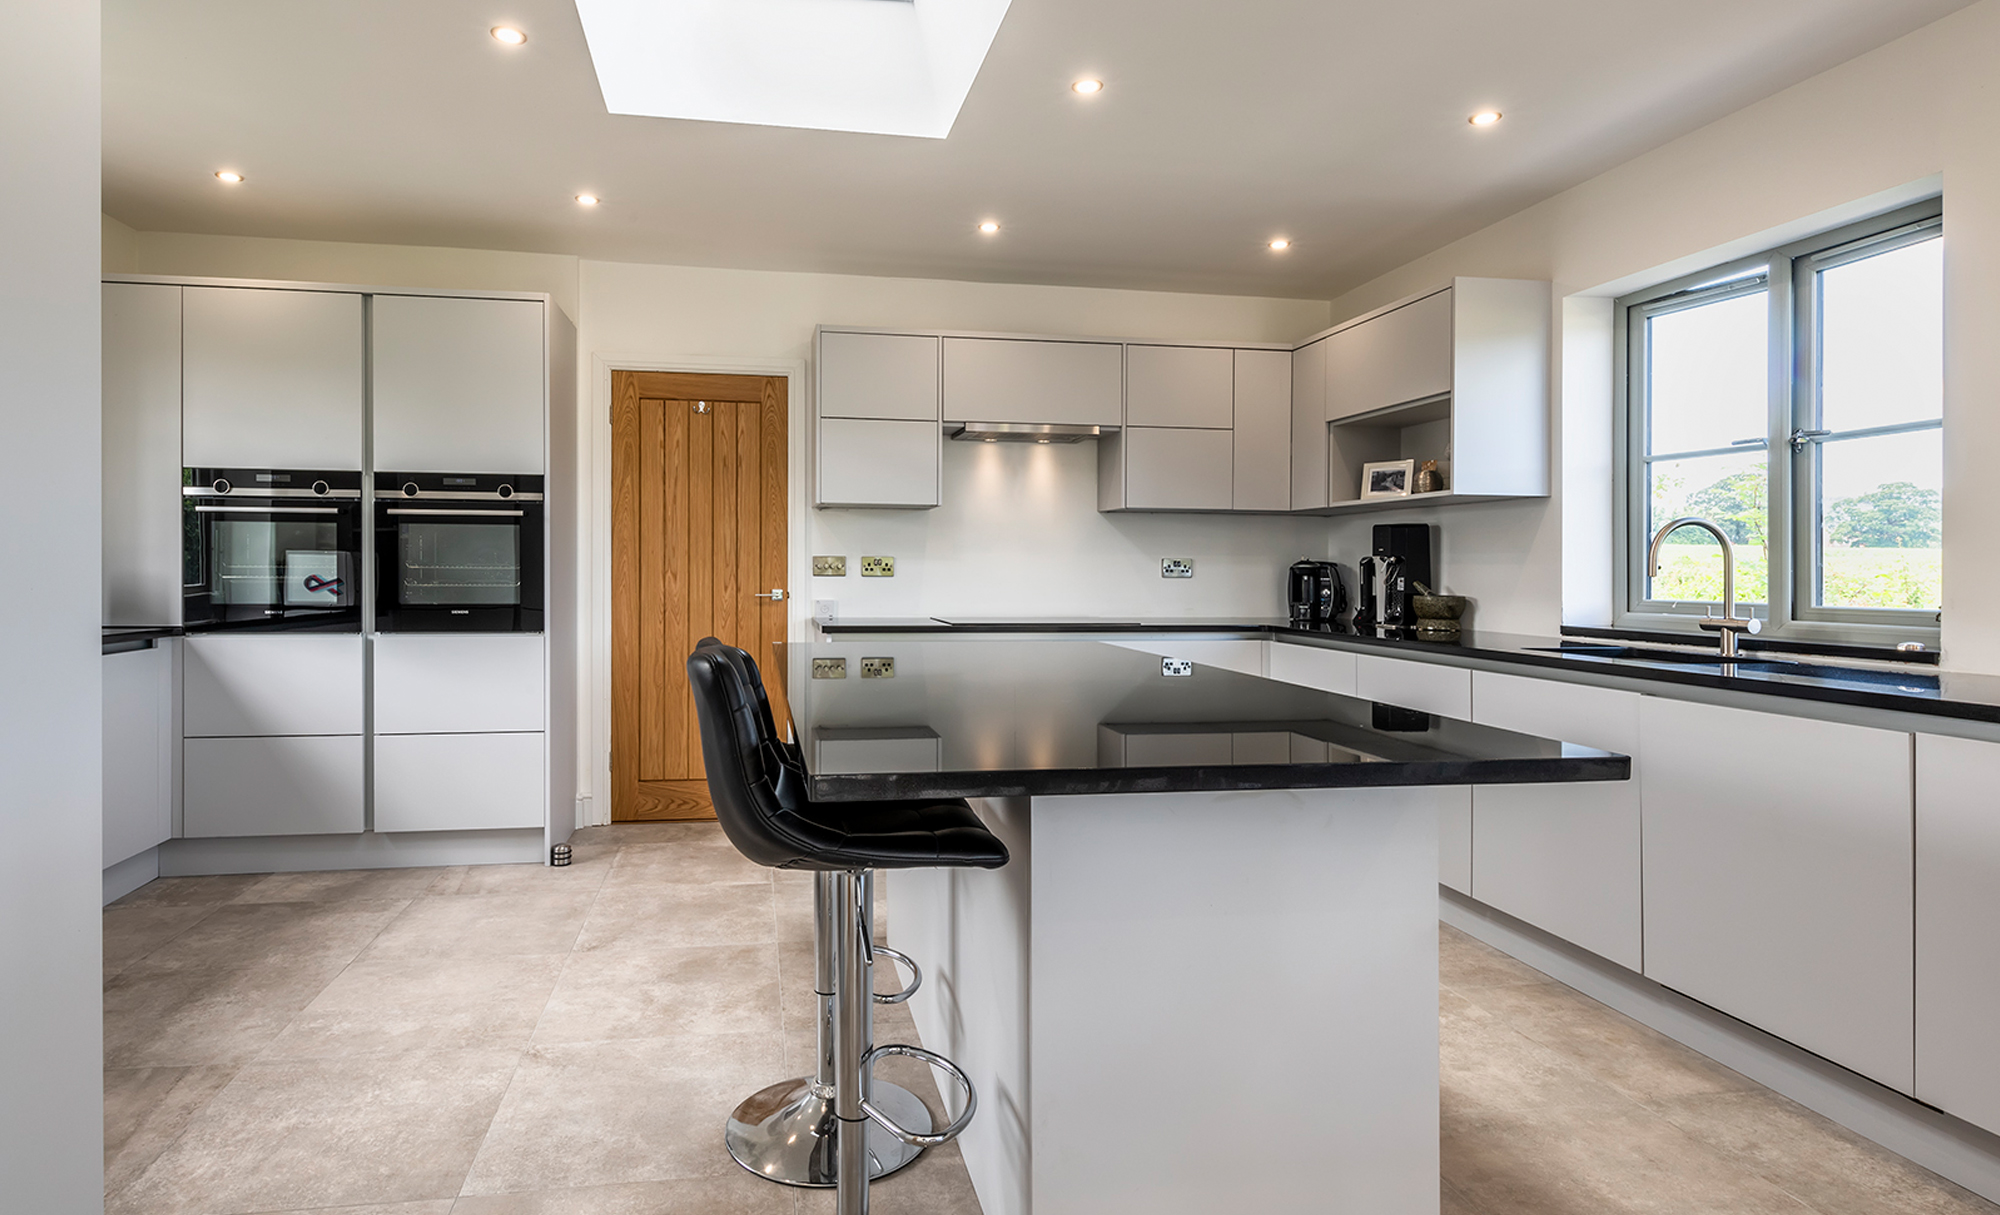 Zola Matte Light Grey kitchen for Adrian & Sara of North Somerset